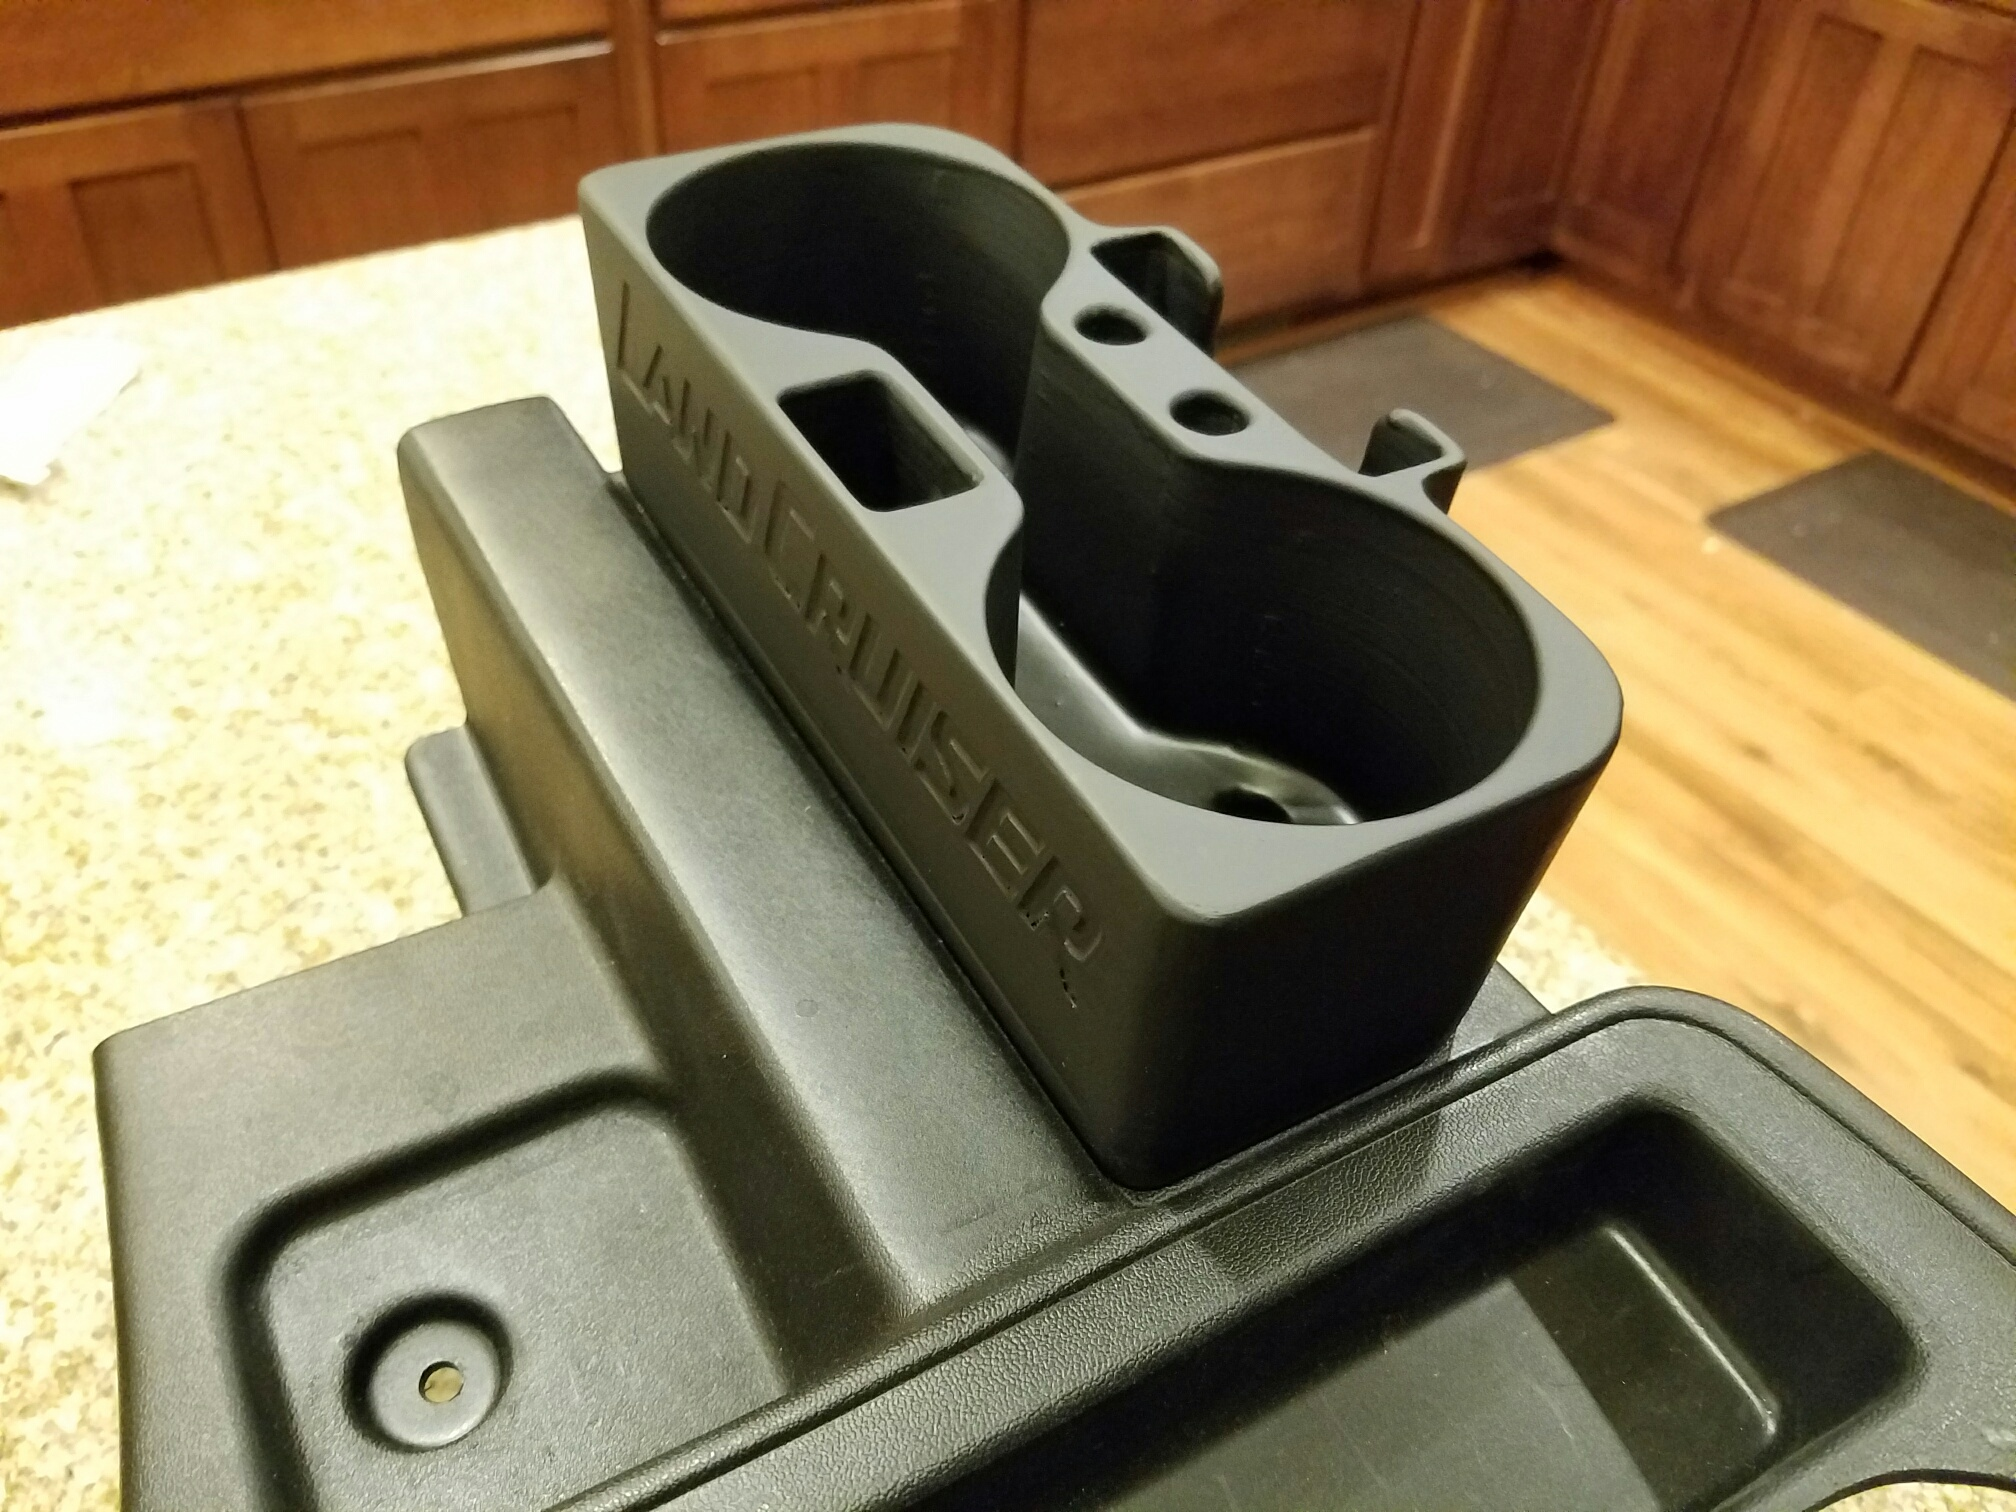 Black Toyota Tacoma >> 70 Series Cup Holder-Go to Odd Iron Offroad For Purchasing-Link Below – BH3D Printing